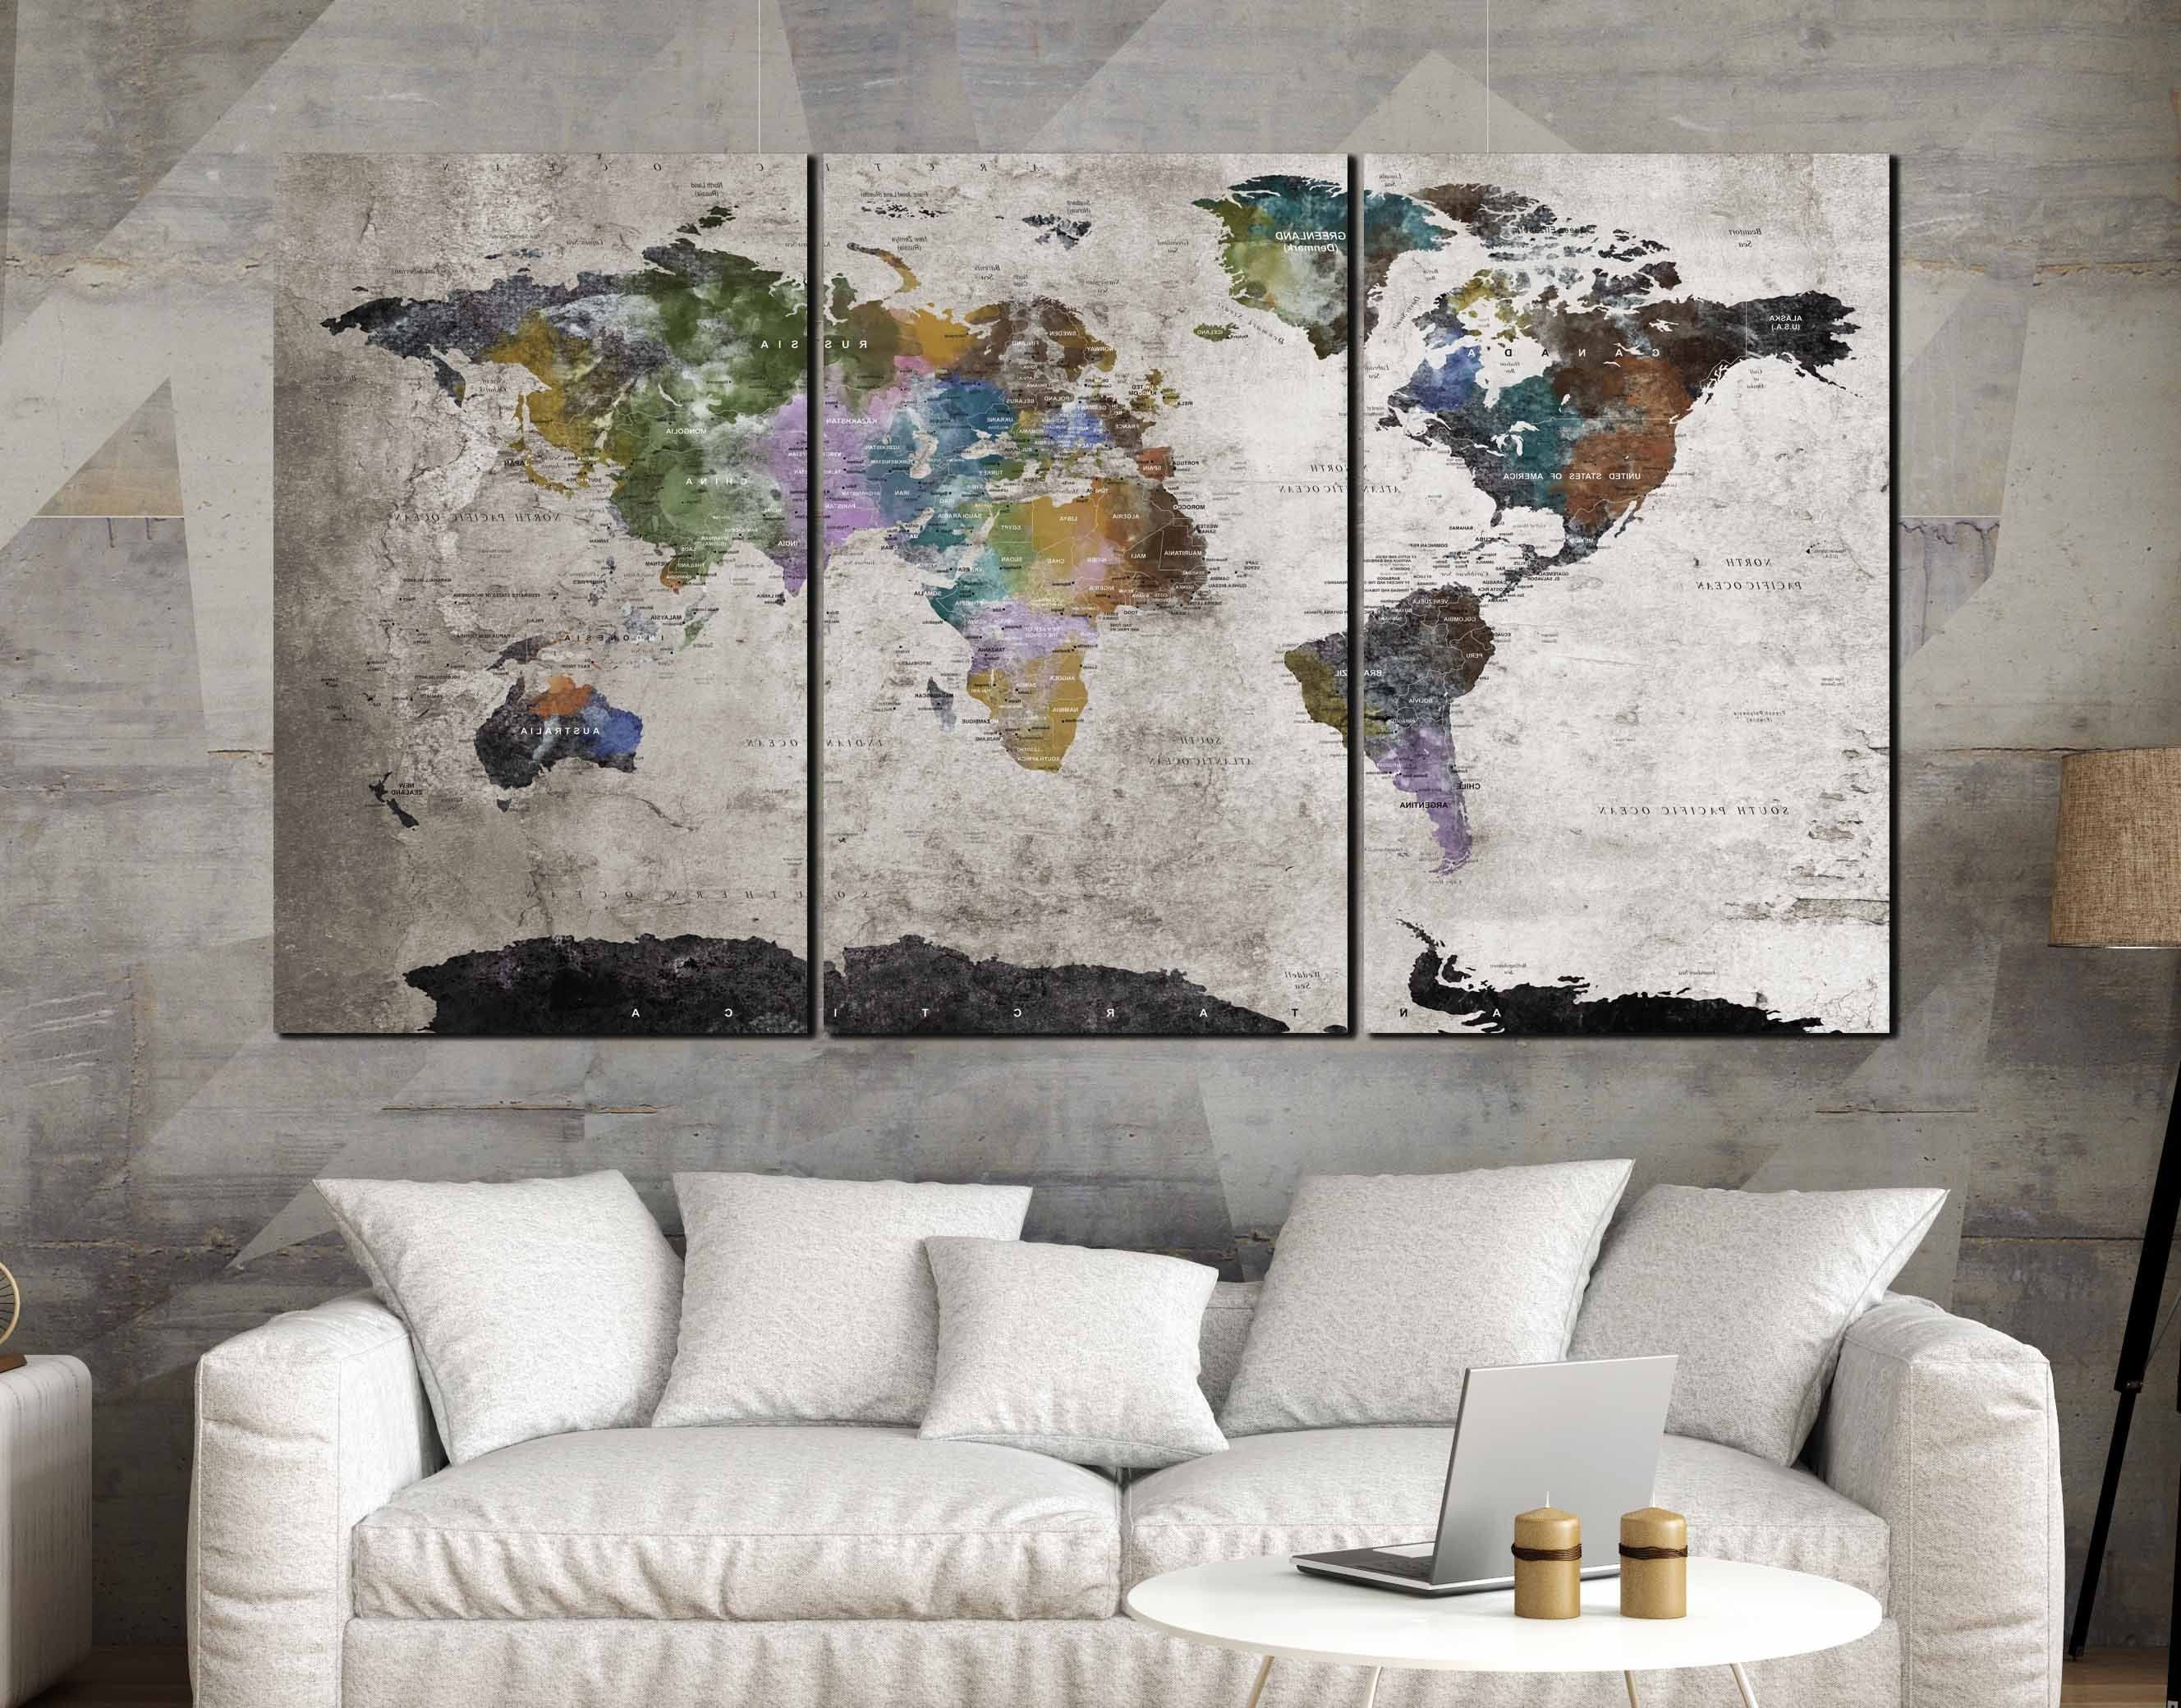 Displaying gallery of malaysia canvas wall art view 12 of 15 photos malaysia canvas wall art with most up to date highly detailed world map wall art gumiabroncs Image collections